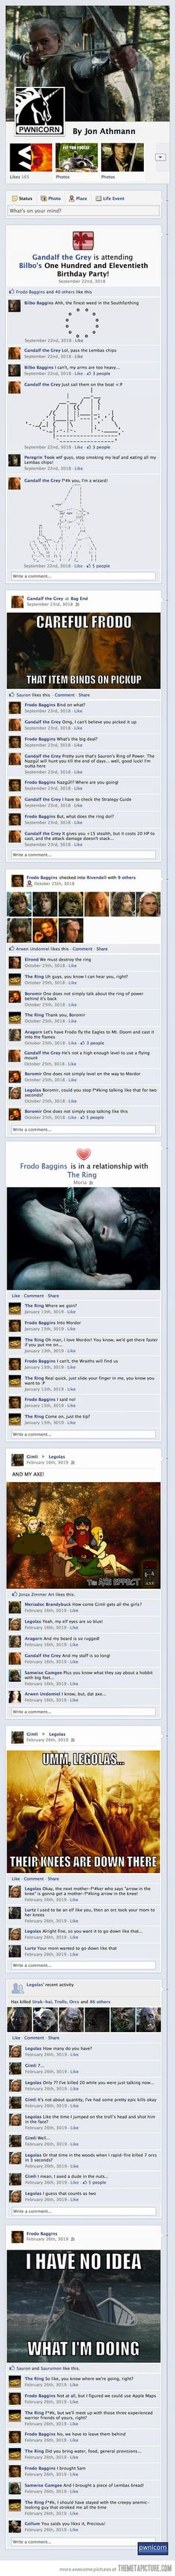 The Lord of the Rings on Facebook… sorry for the swearing, not my doing...